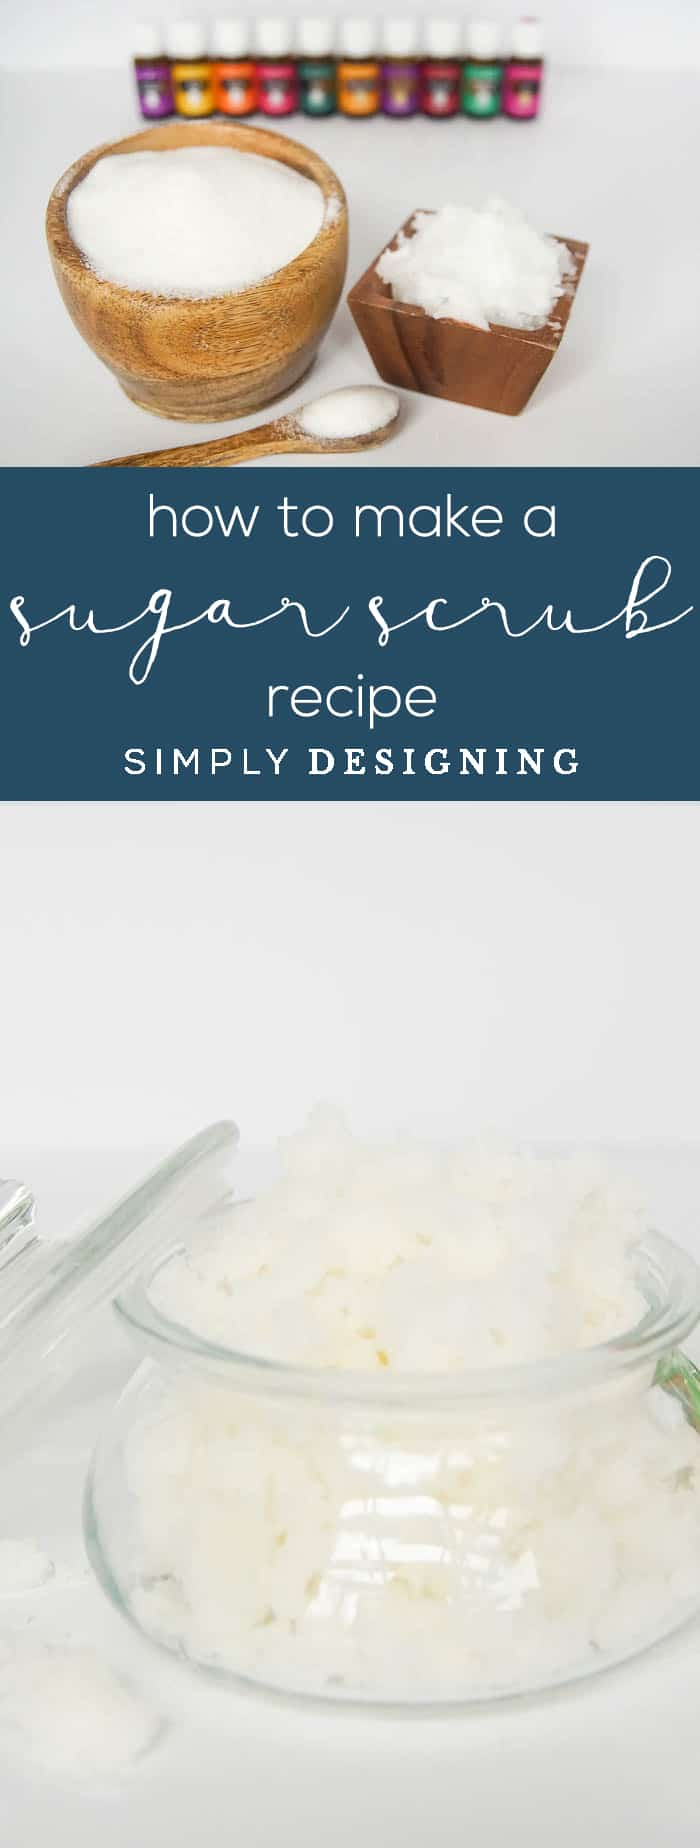 DIY Sugar Scrub Recipe